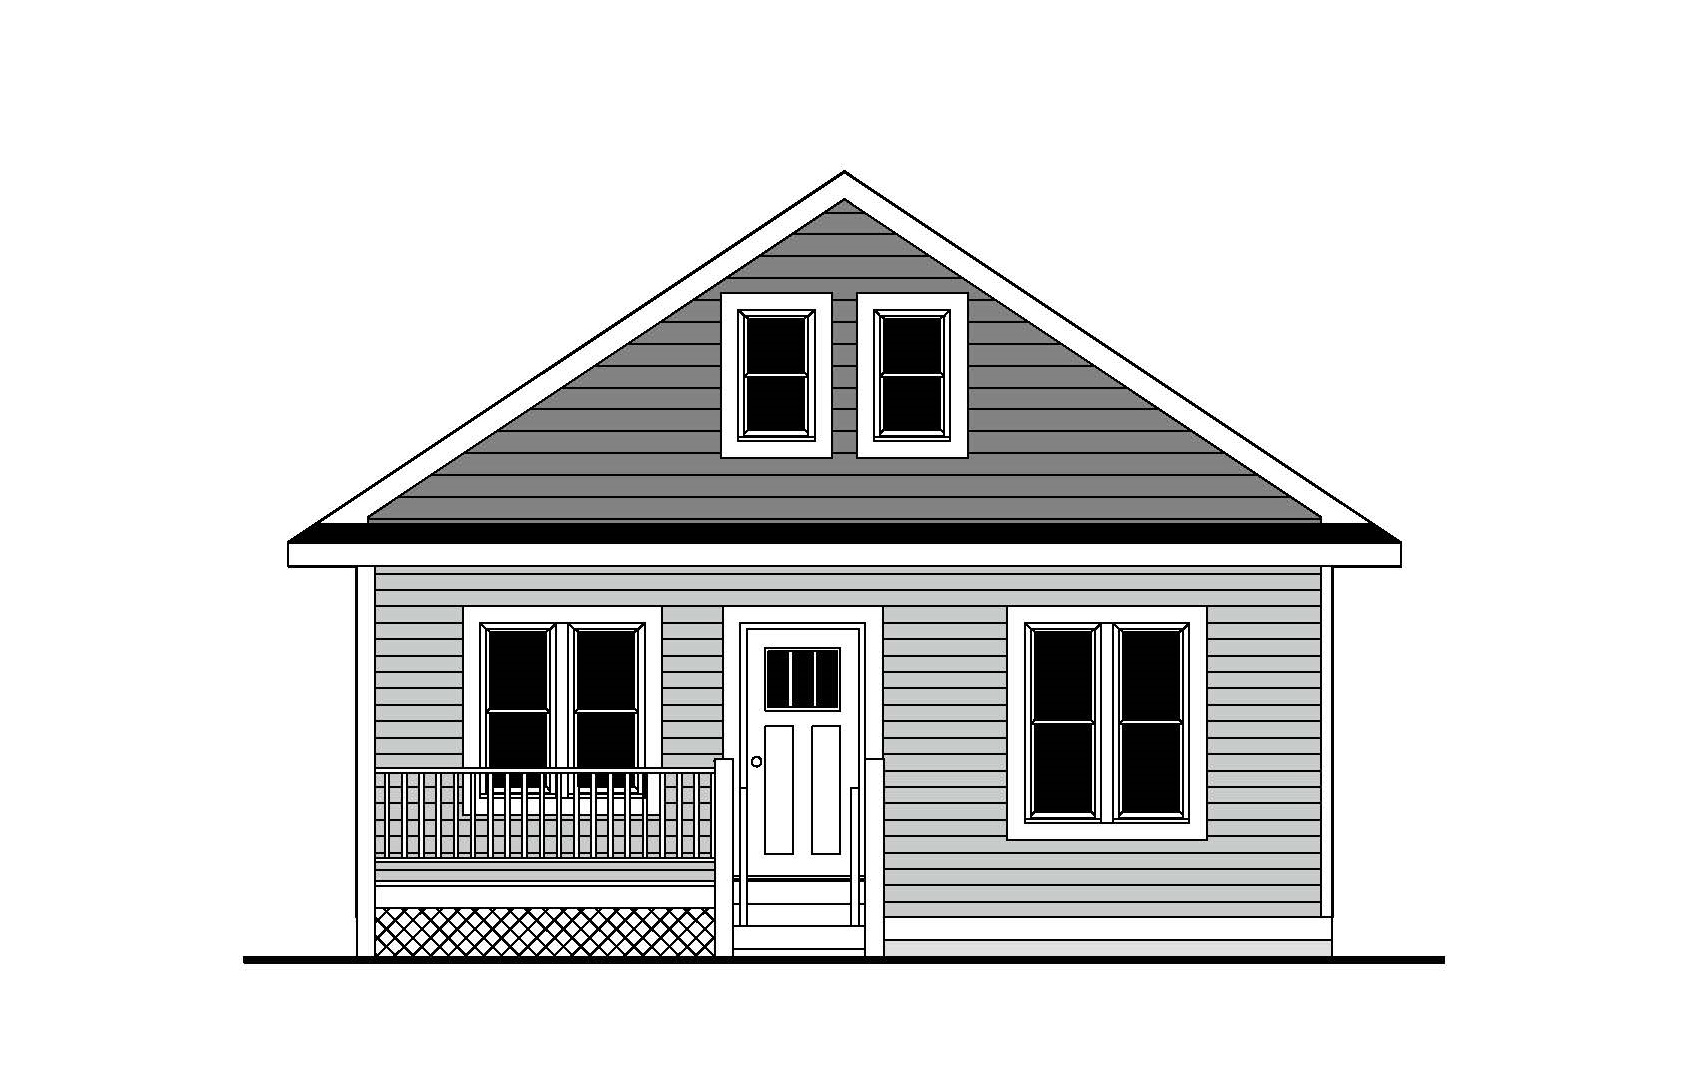 Bungalow - Exterior CROPPED.jpg